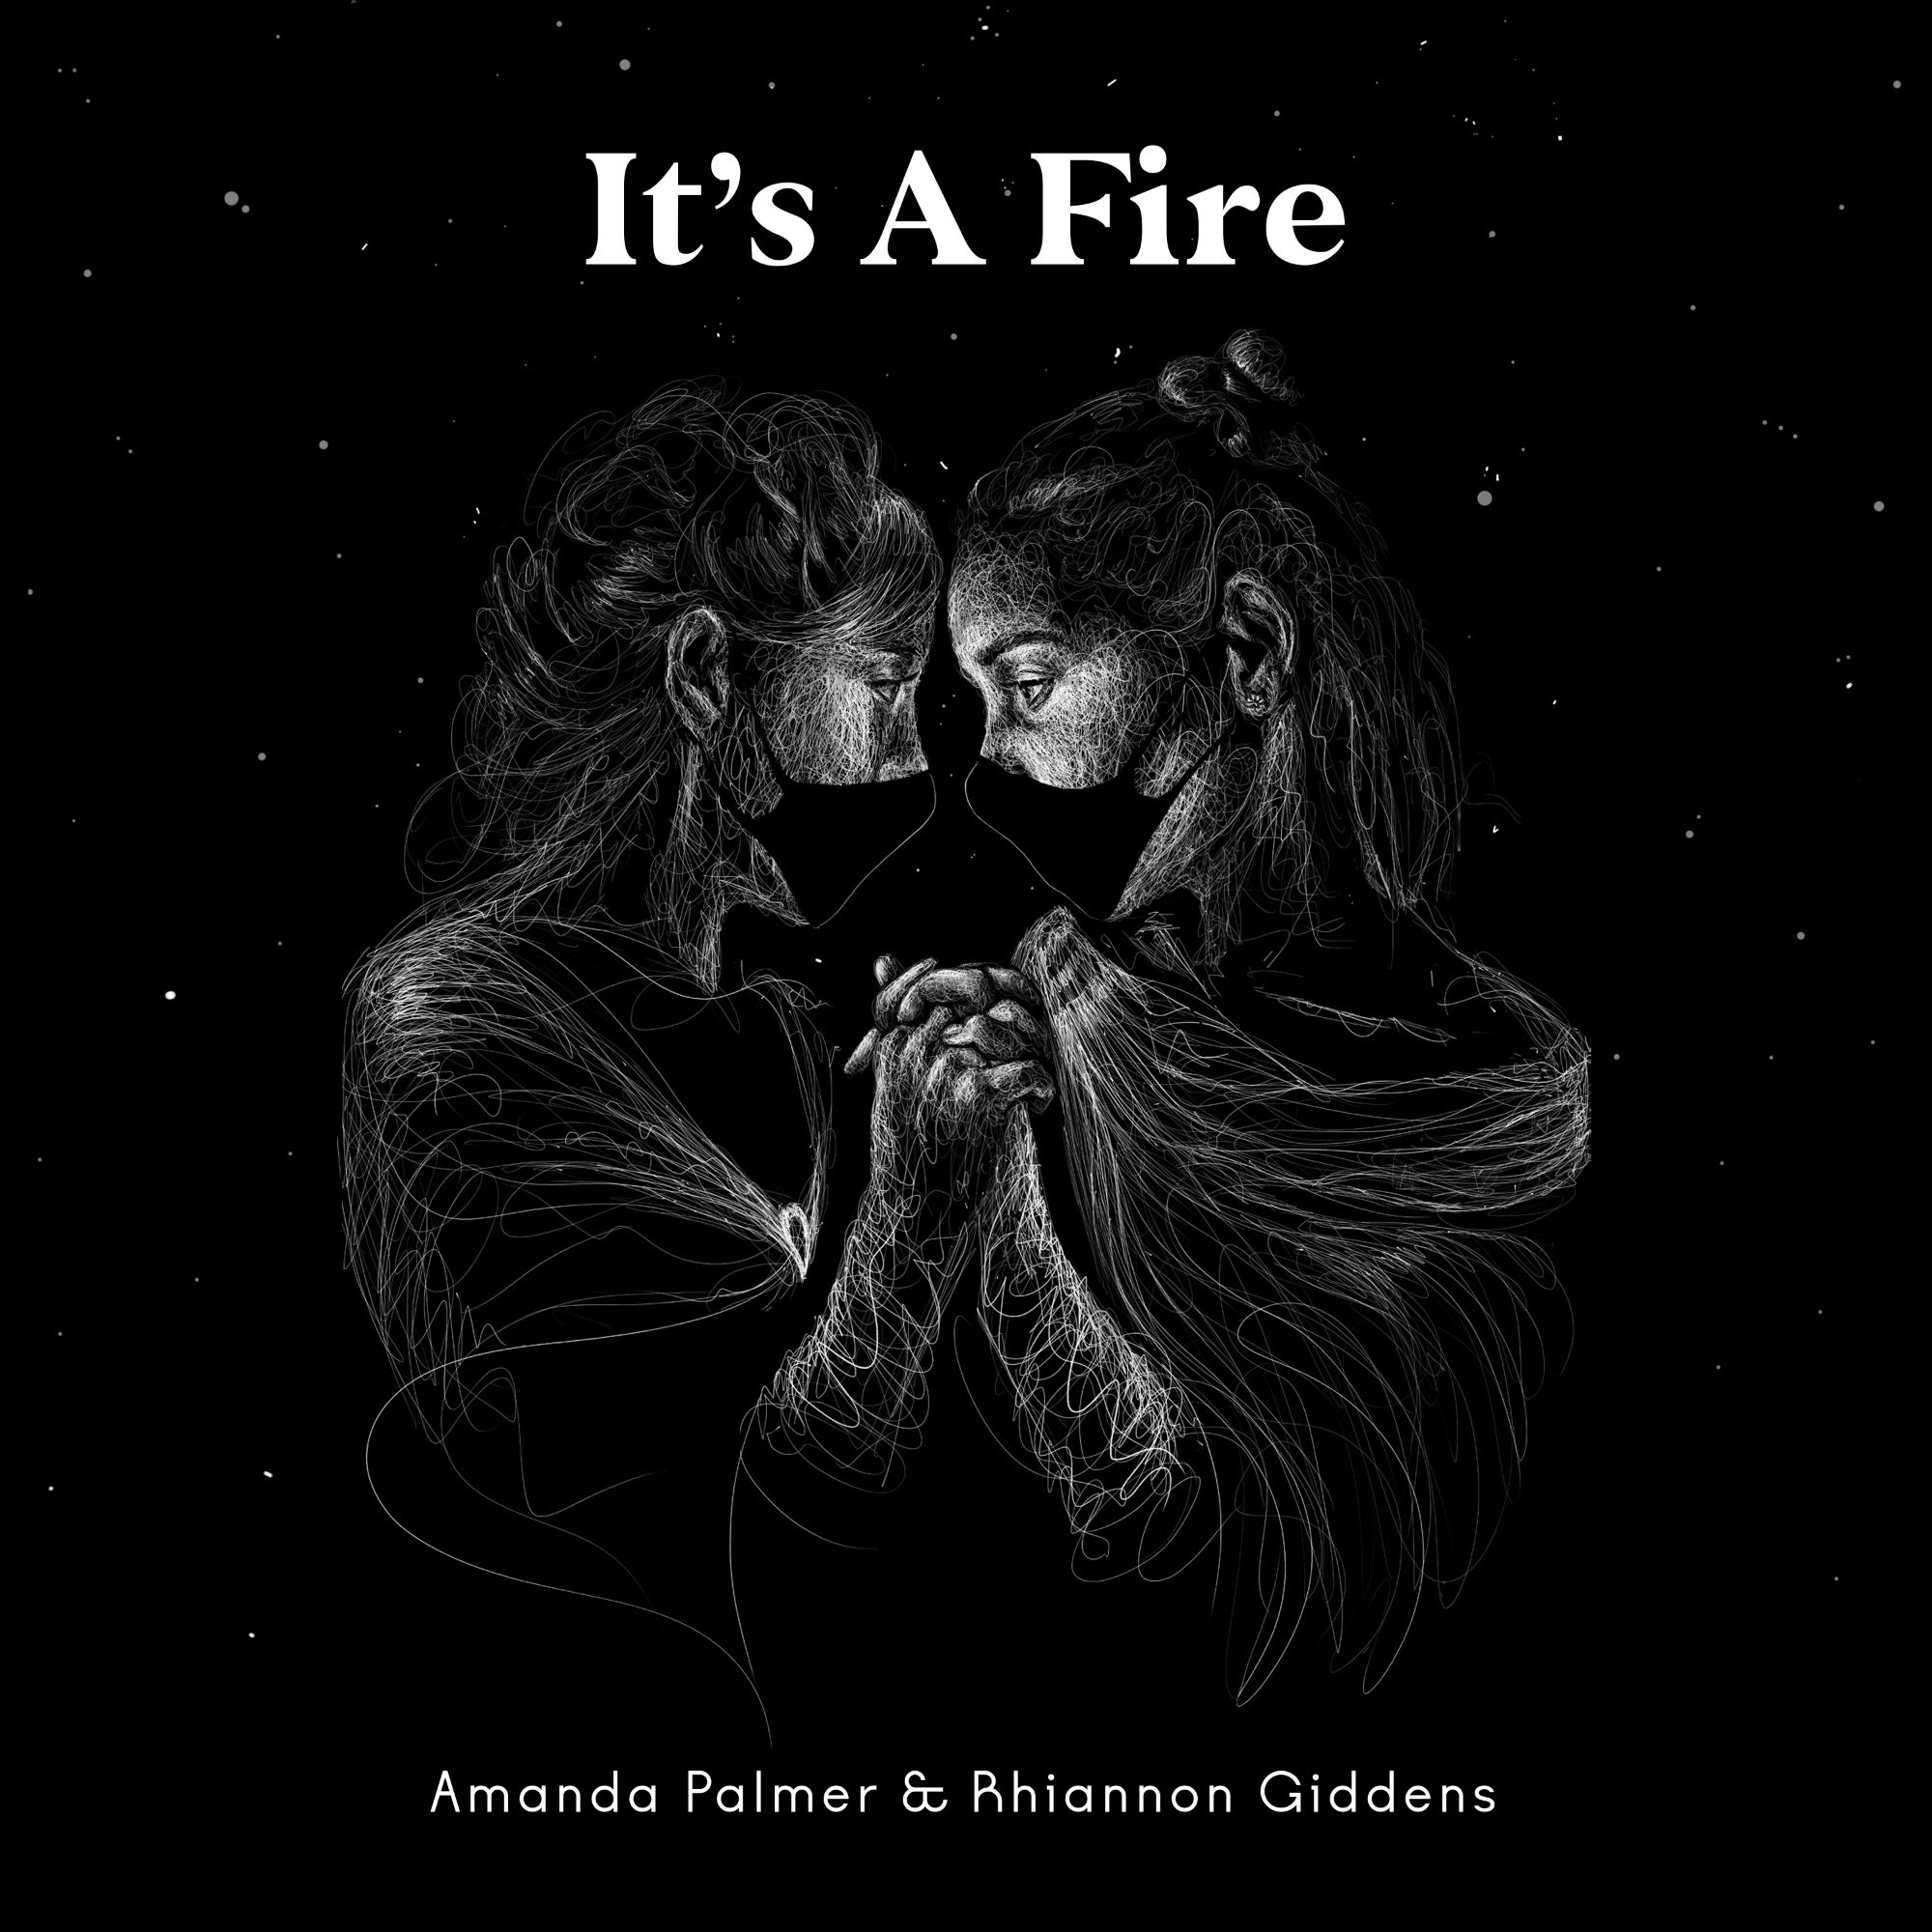 The artwork for Amanda Palmer and Rihannon Giddens' 'It's A Fire', by Jessica Coppet.